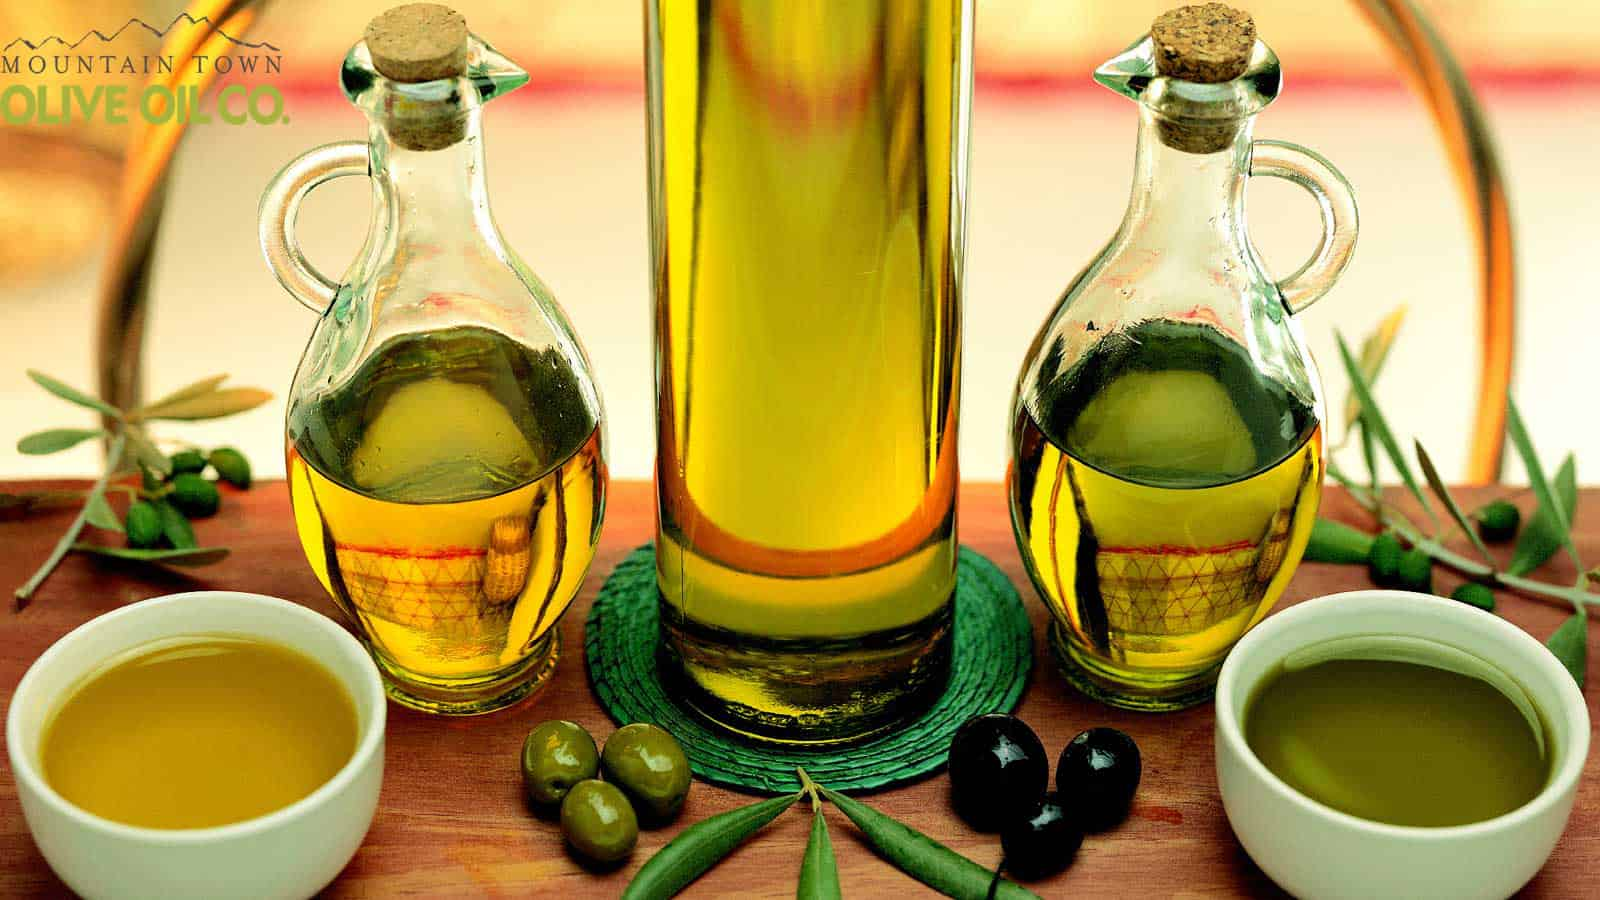 11 best benefits of using Olive Oil - Mountain Town Olive Oil